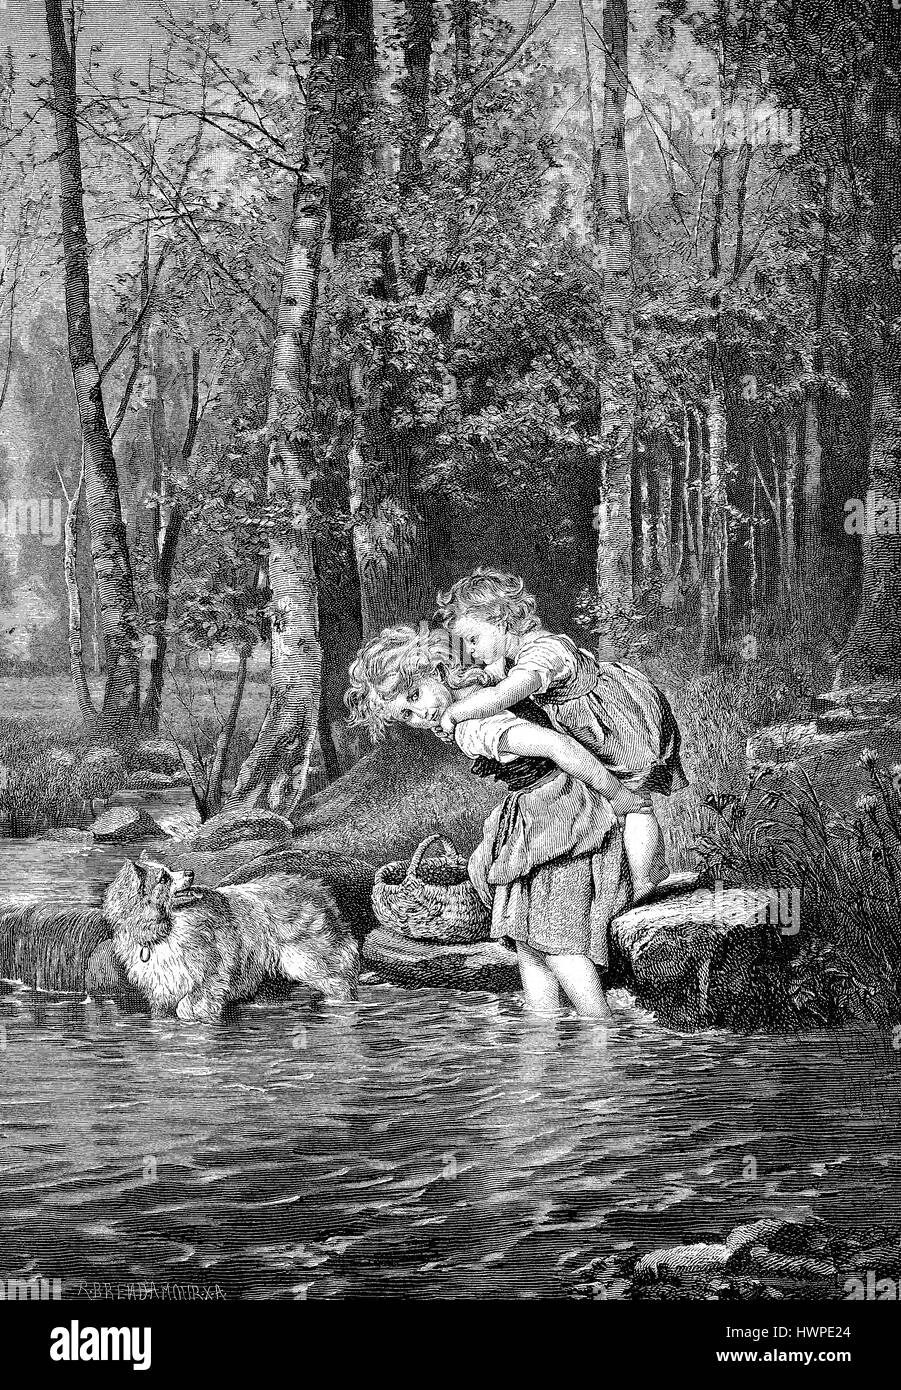 Girls carry little sister piggy-back through a Creek, Reproduction of an original woodcut from the year 1882, digital Stock Photo